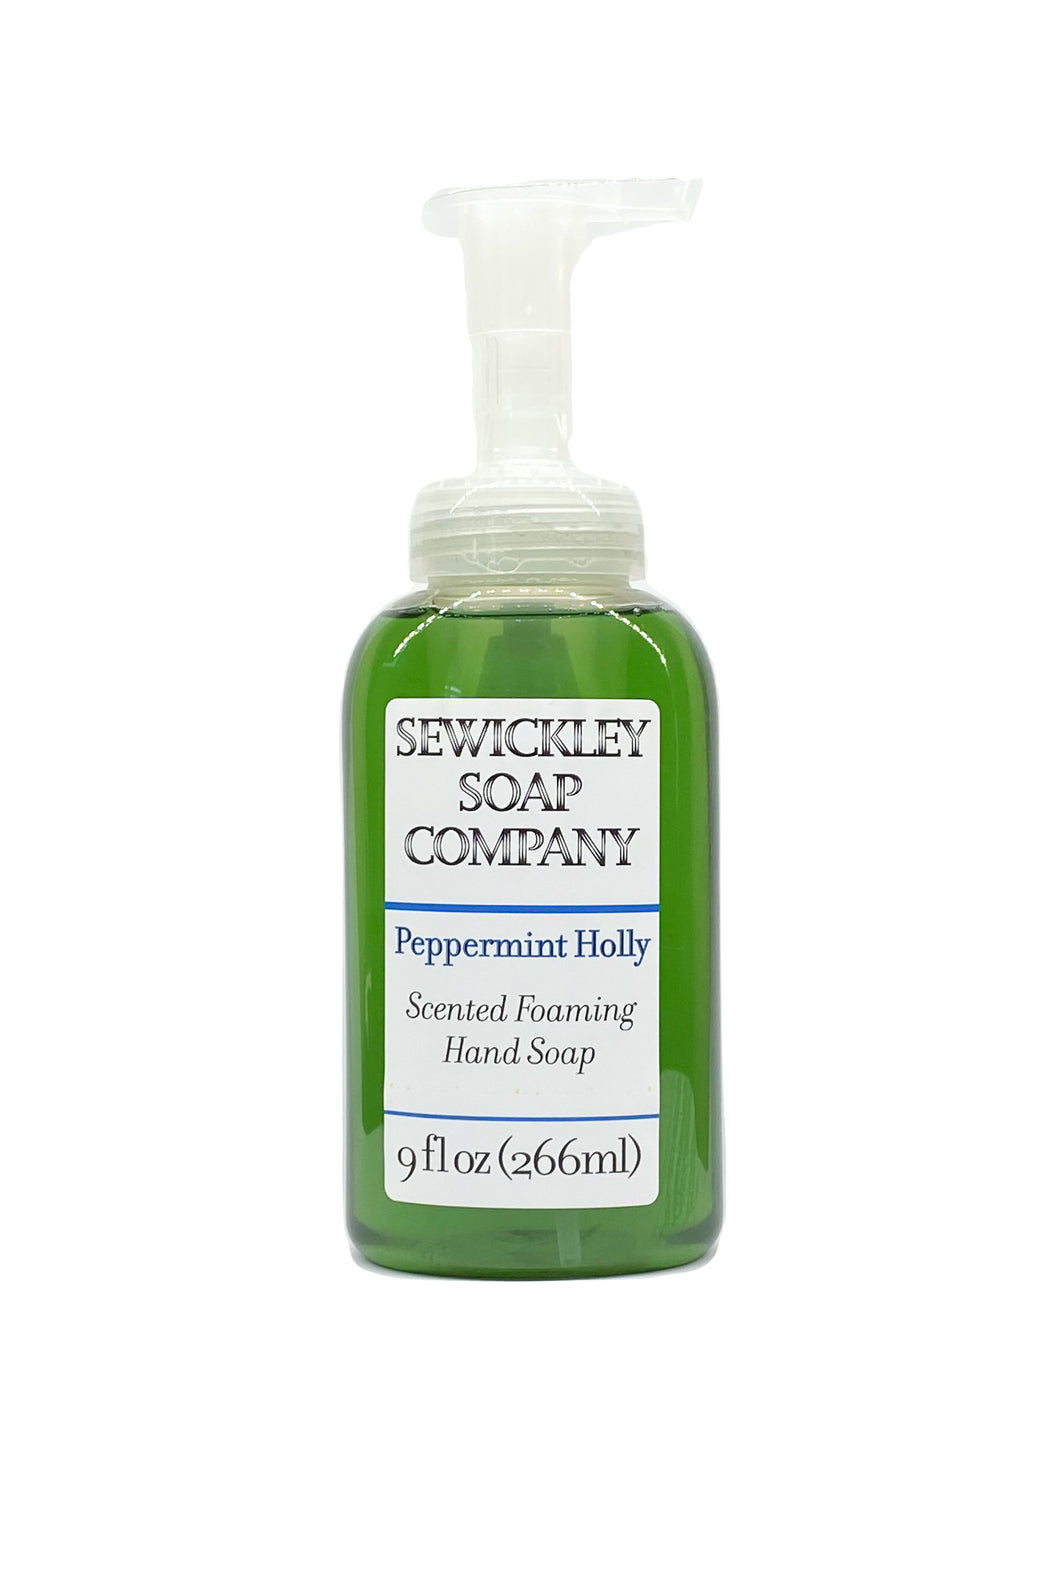 Peppermint Holly Scented Foaming Hand Soap